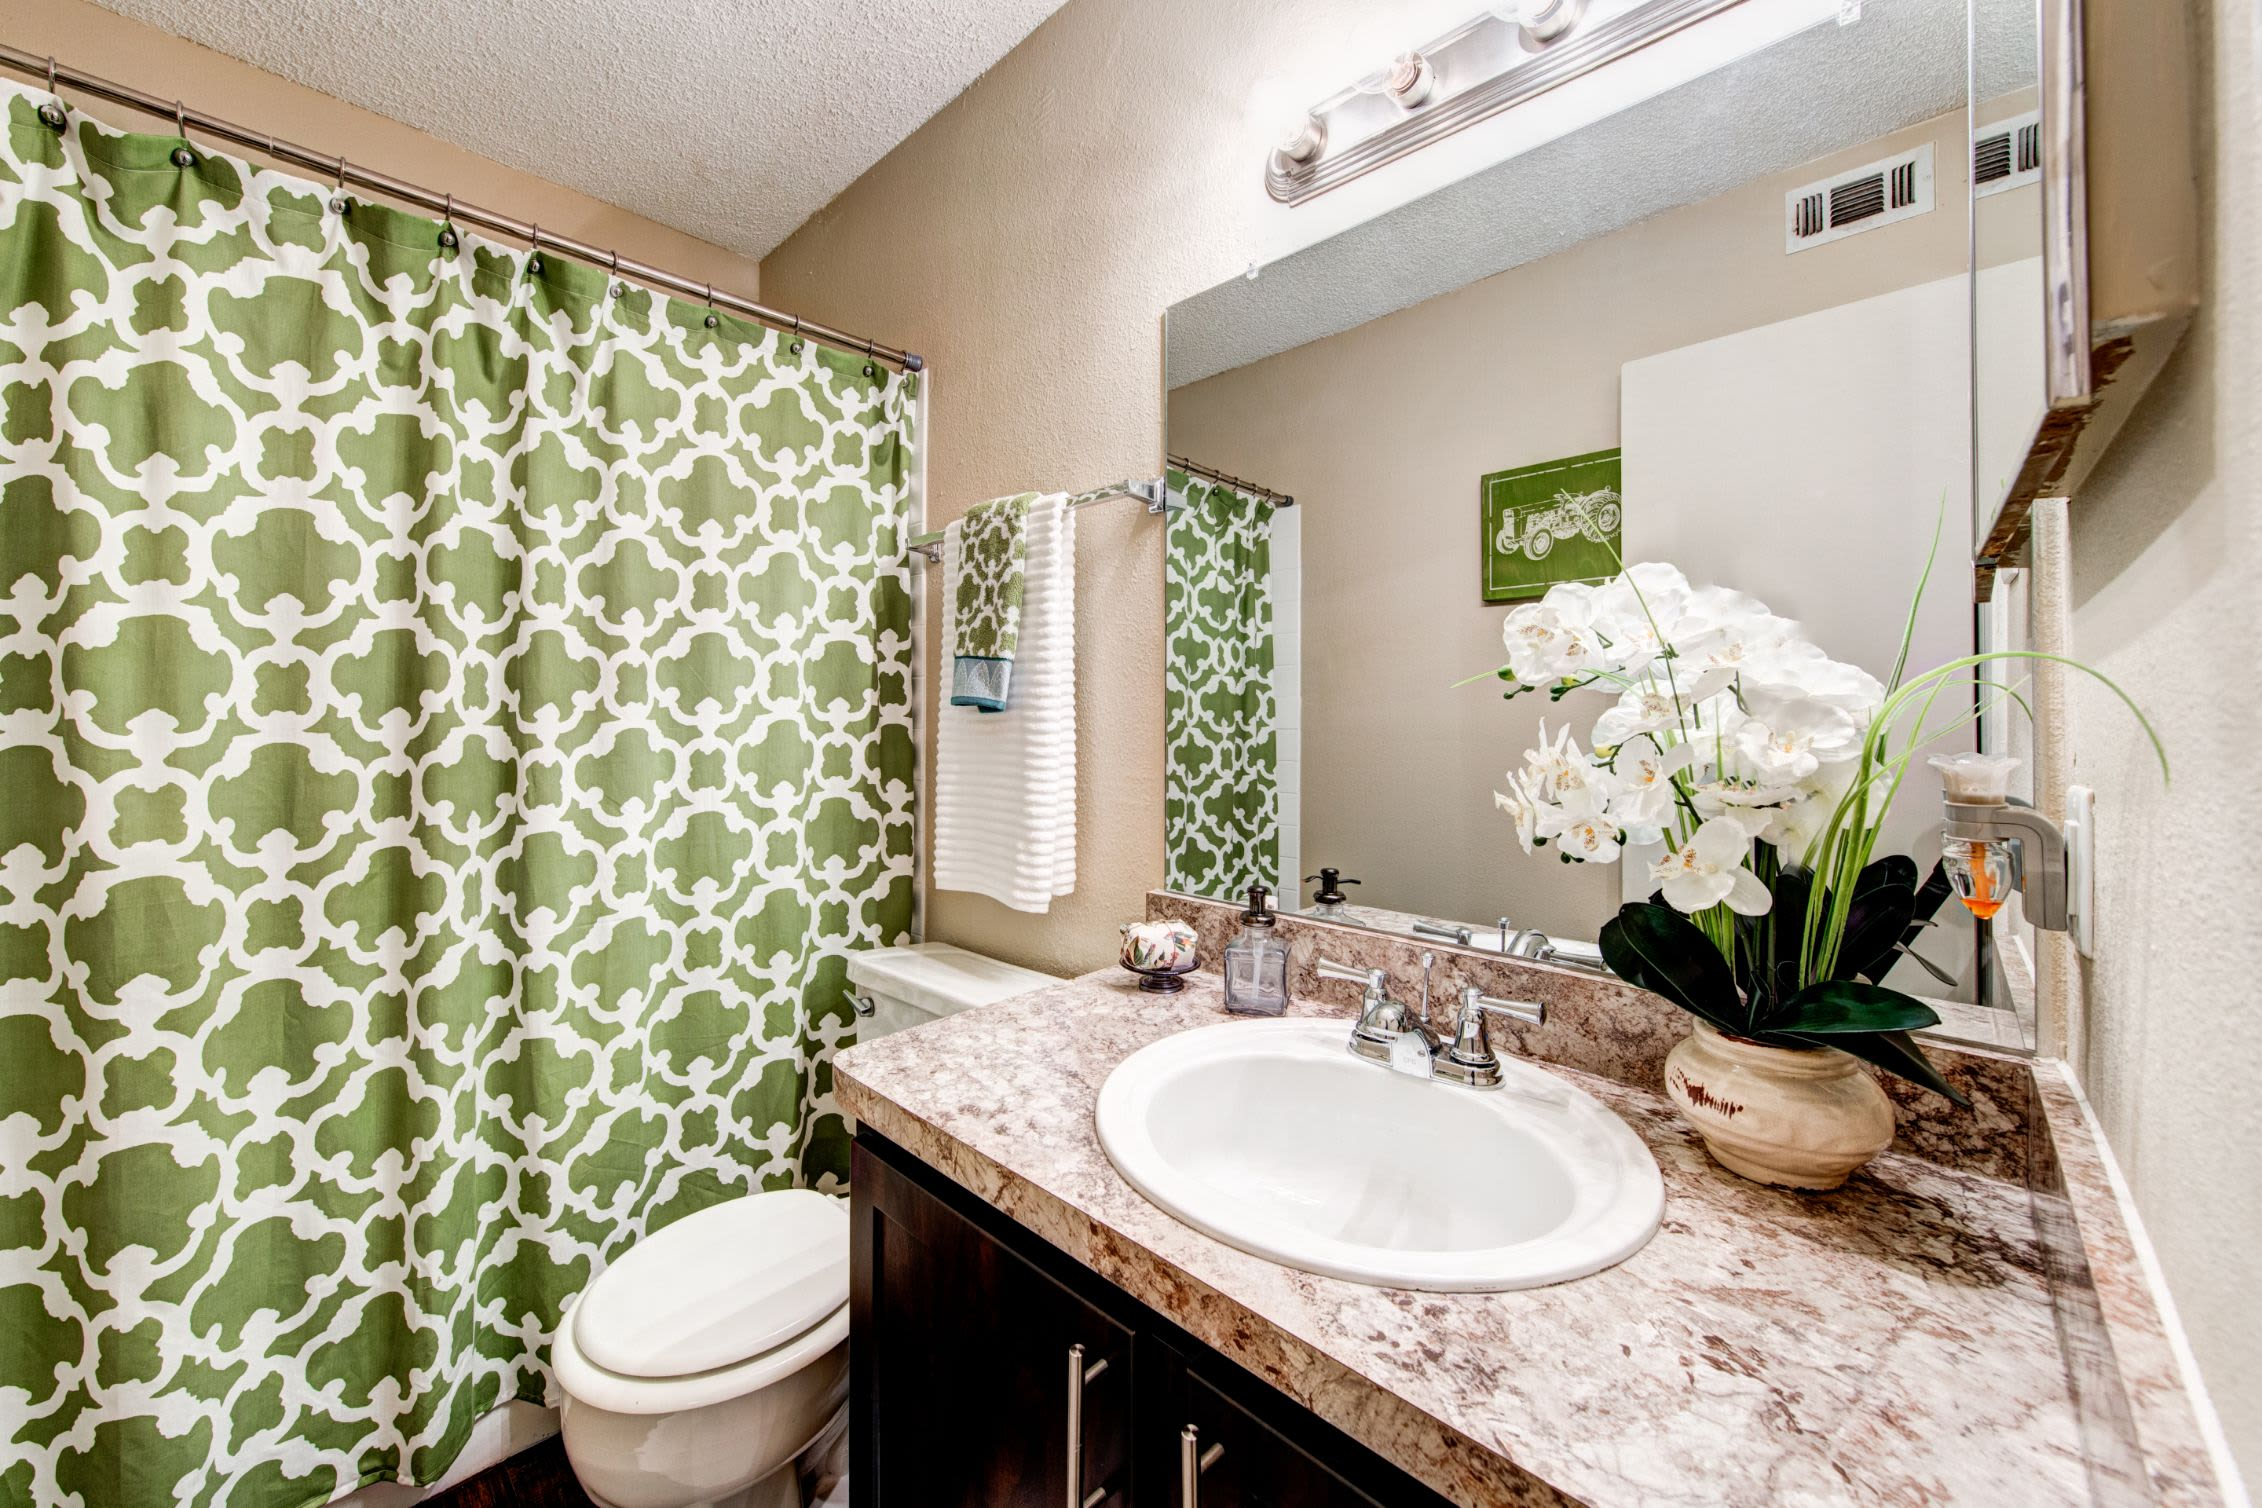 Bathroom with dark colored cabinets at The Park at Flower Mound in Flower Mound, Texas